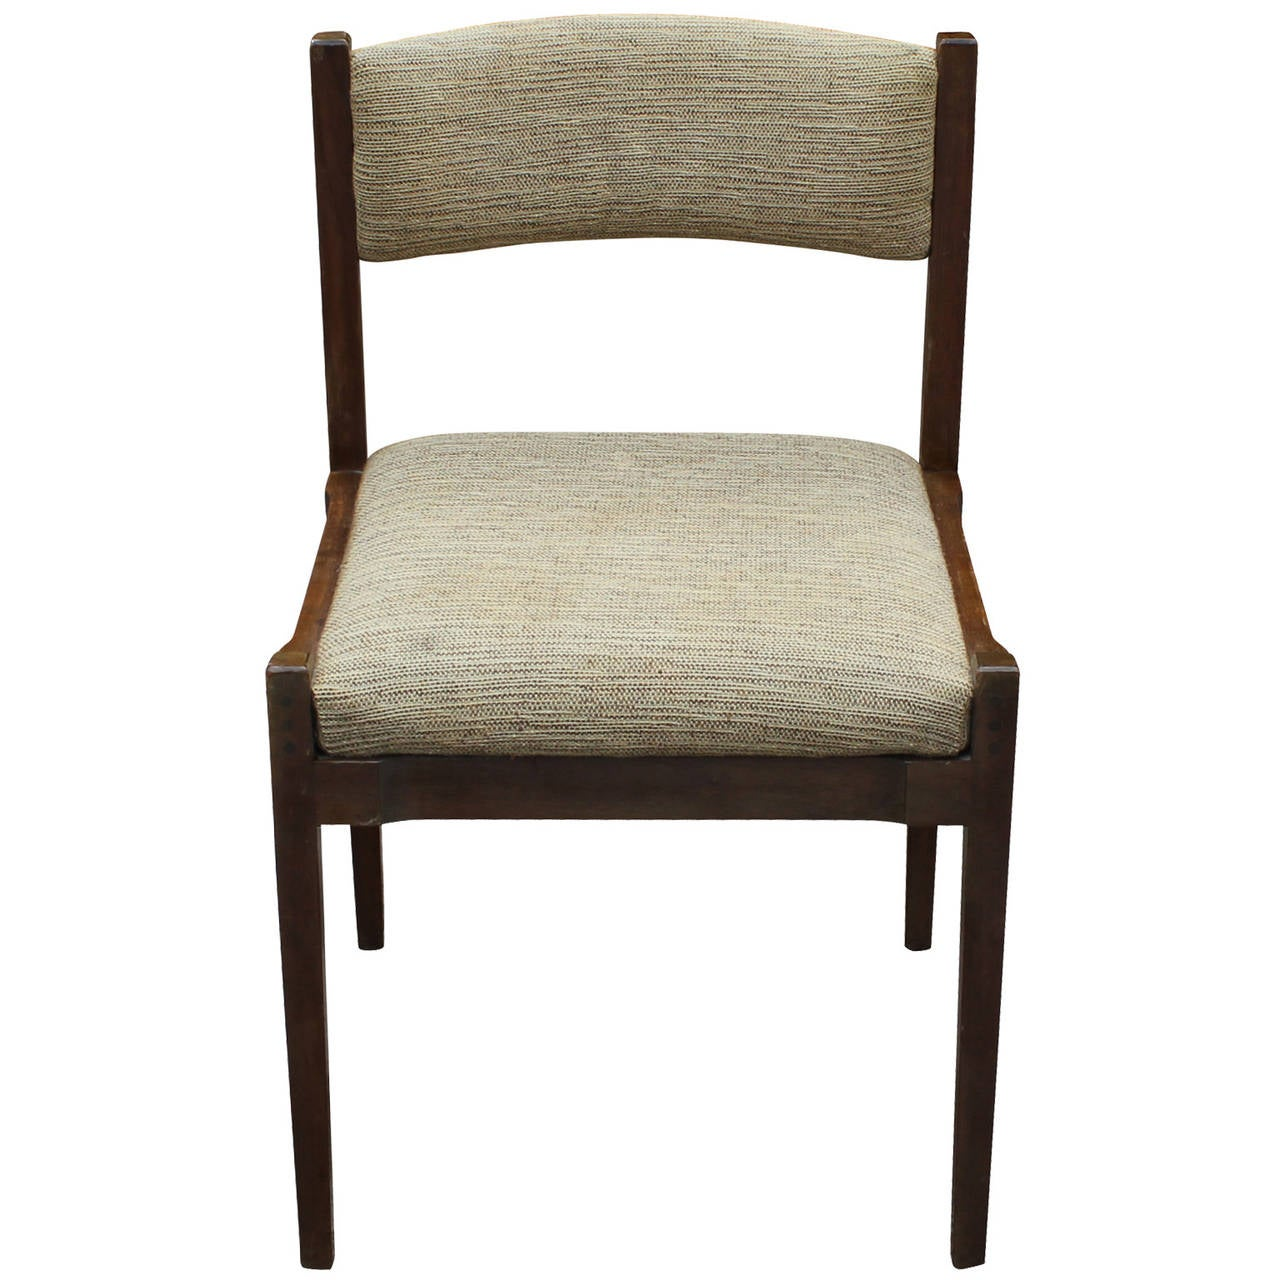 Set Of 12 Chairs By Cassina Gianfranco Frattini At 1stdibs